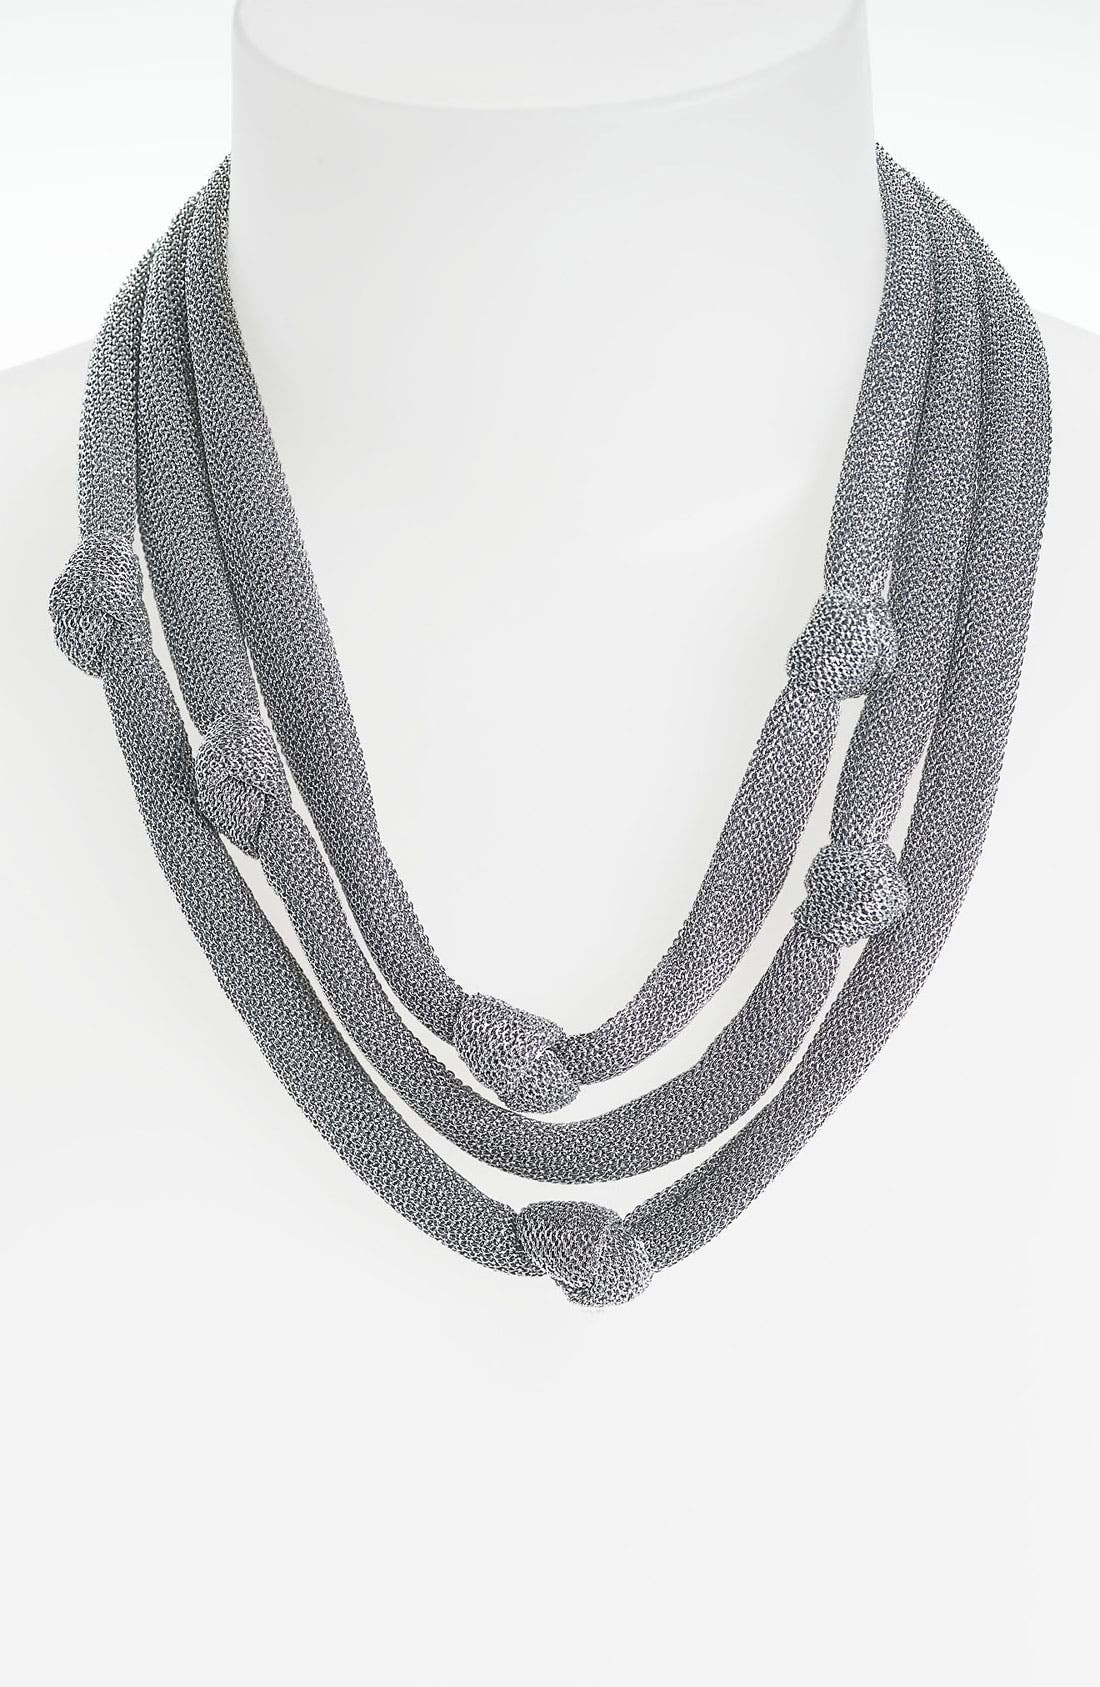 Alternate Image 1 Selected - Adami & Martucci 'Mesh' Multistrand Necklace (Nordstrom Exclusive)